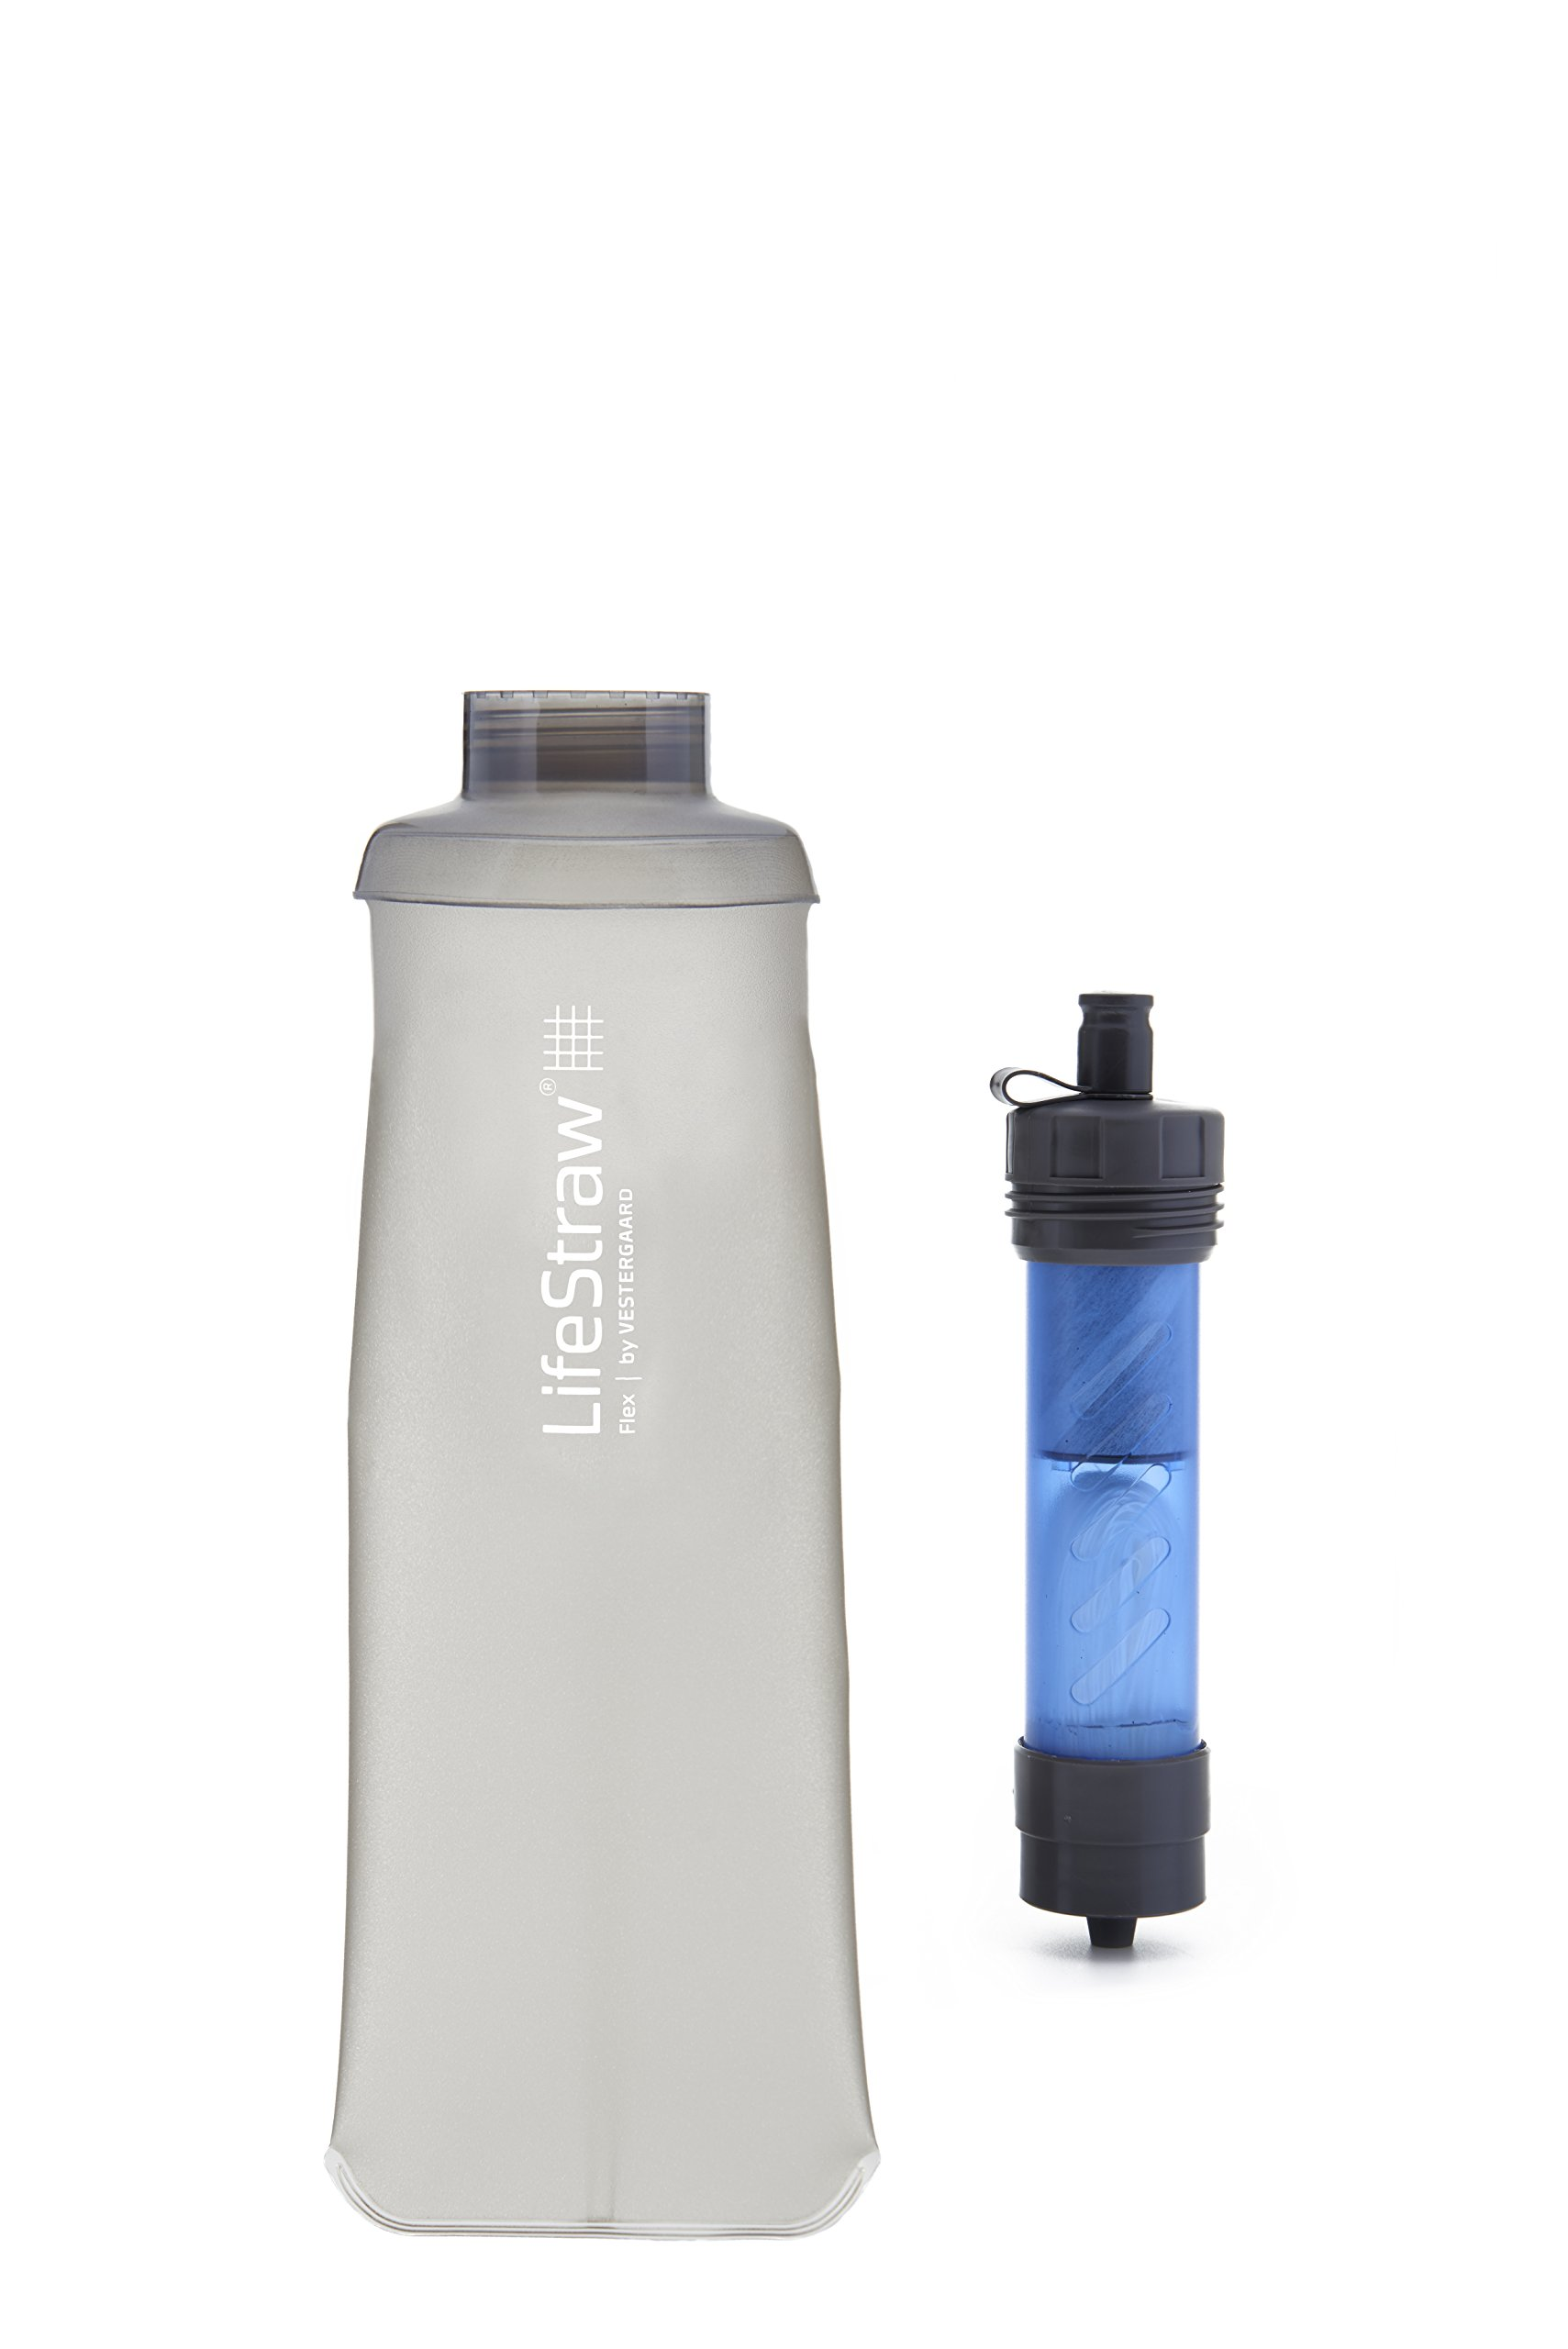 LifeStraw Flex Multi-Function Water Filter System with 2-Stage Carbon Filtration for Hiking, Camping and Emergency Preparedness by LifeStraw